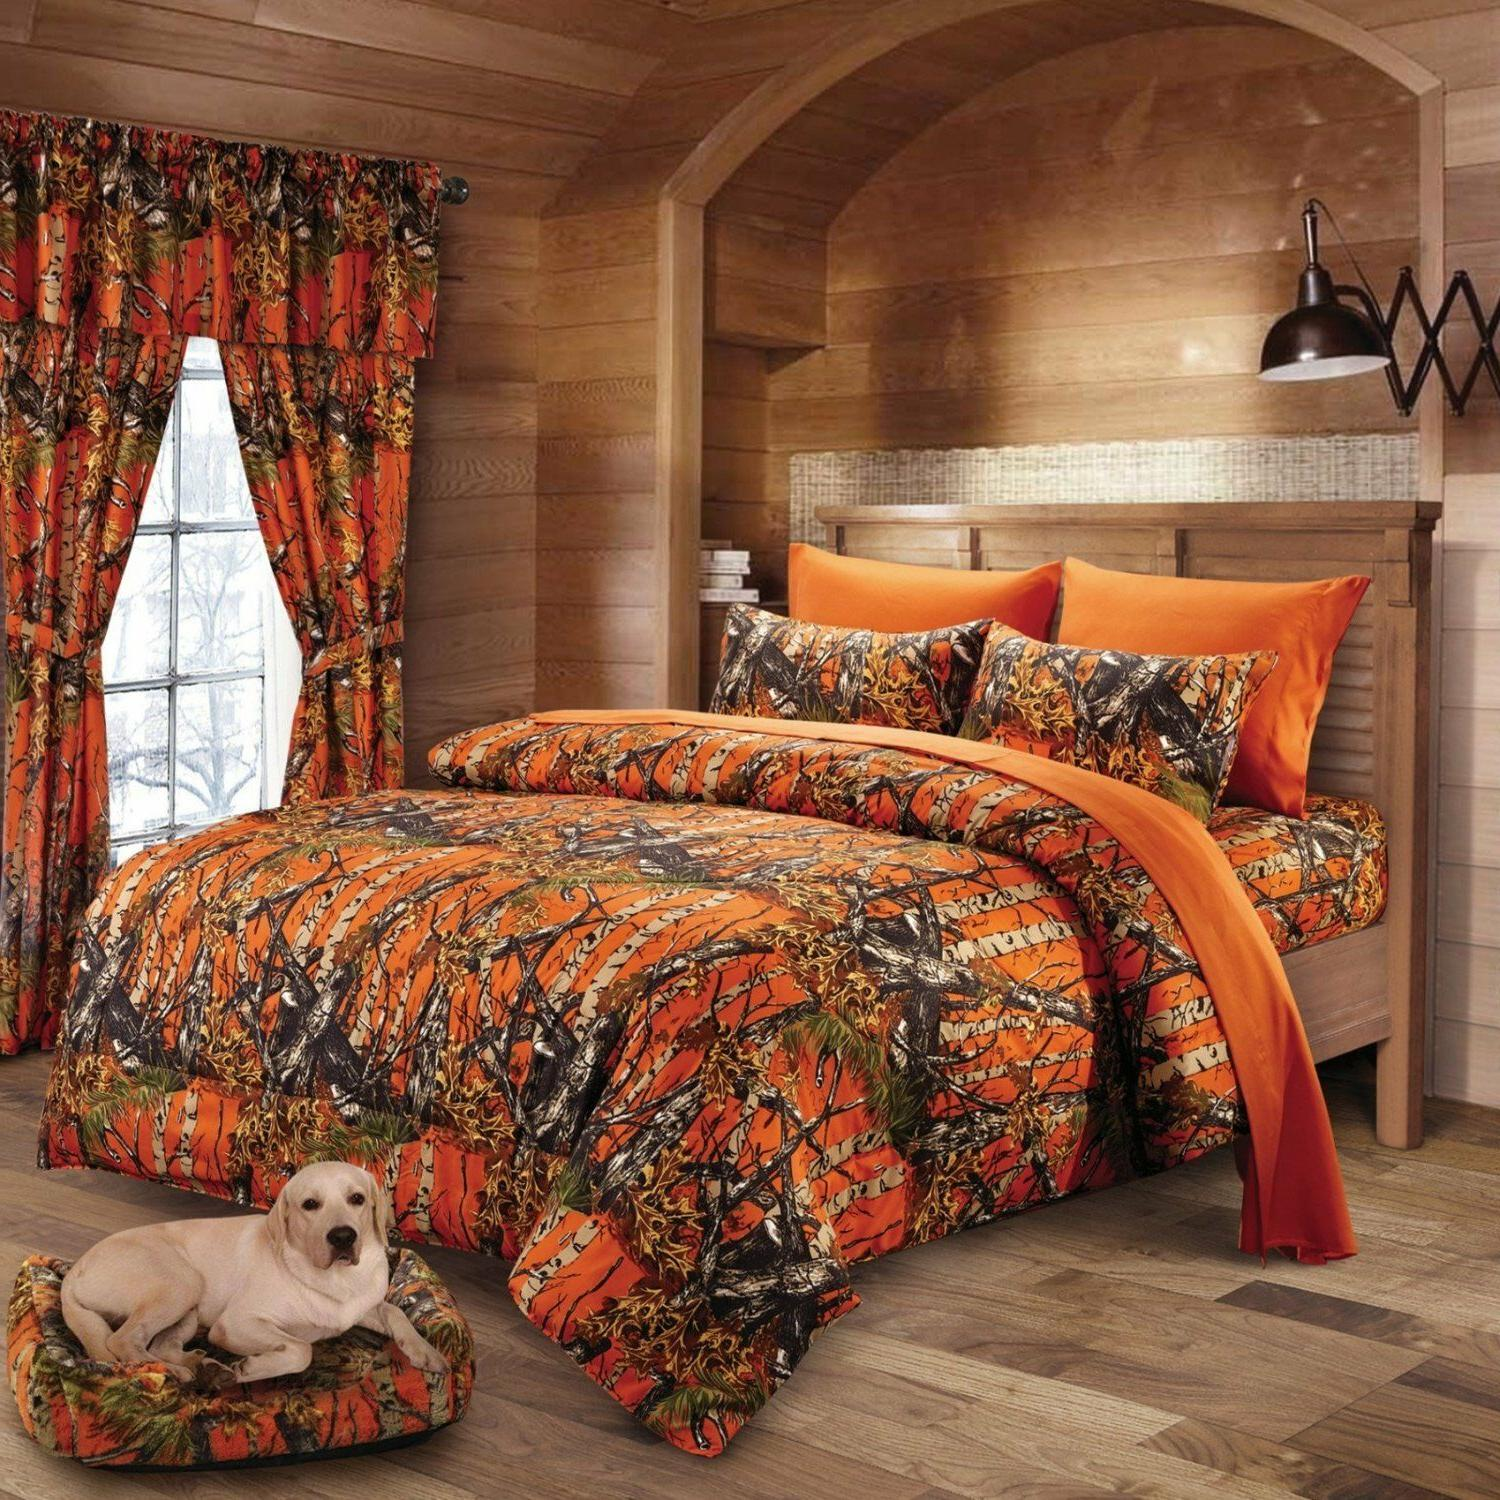 12 PC SET WOODS CAMO COMFORTER AND SHEET SET! KING! BED IN B